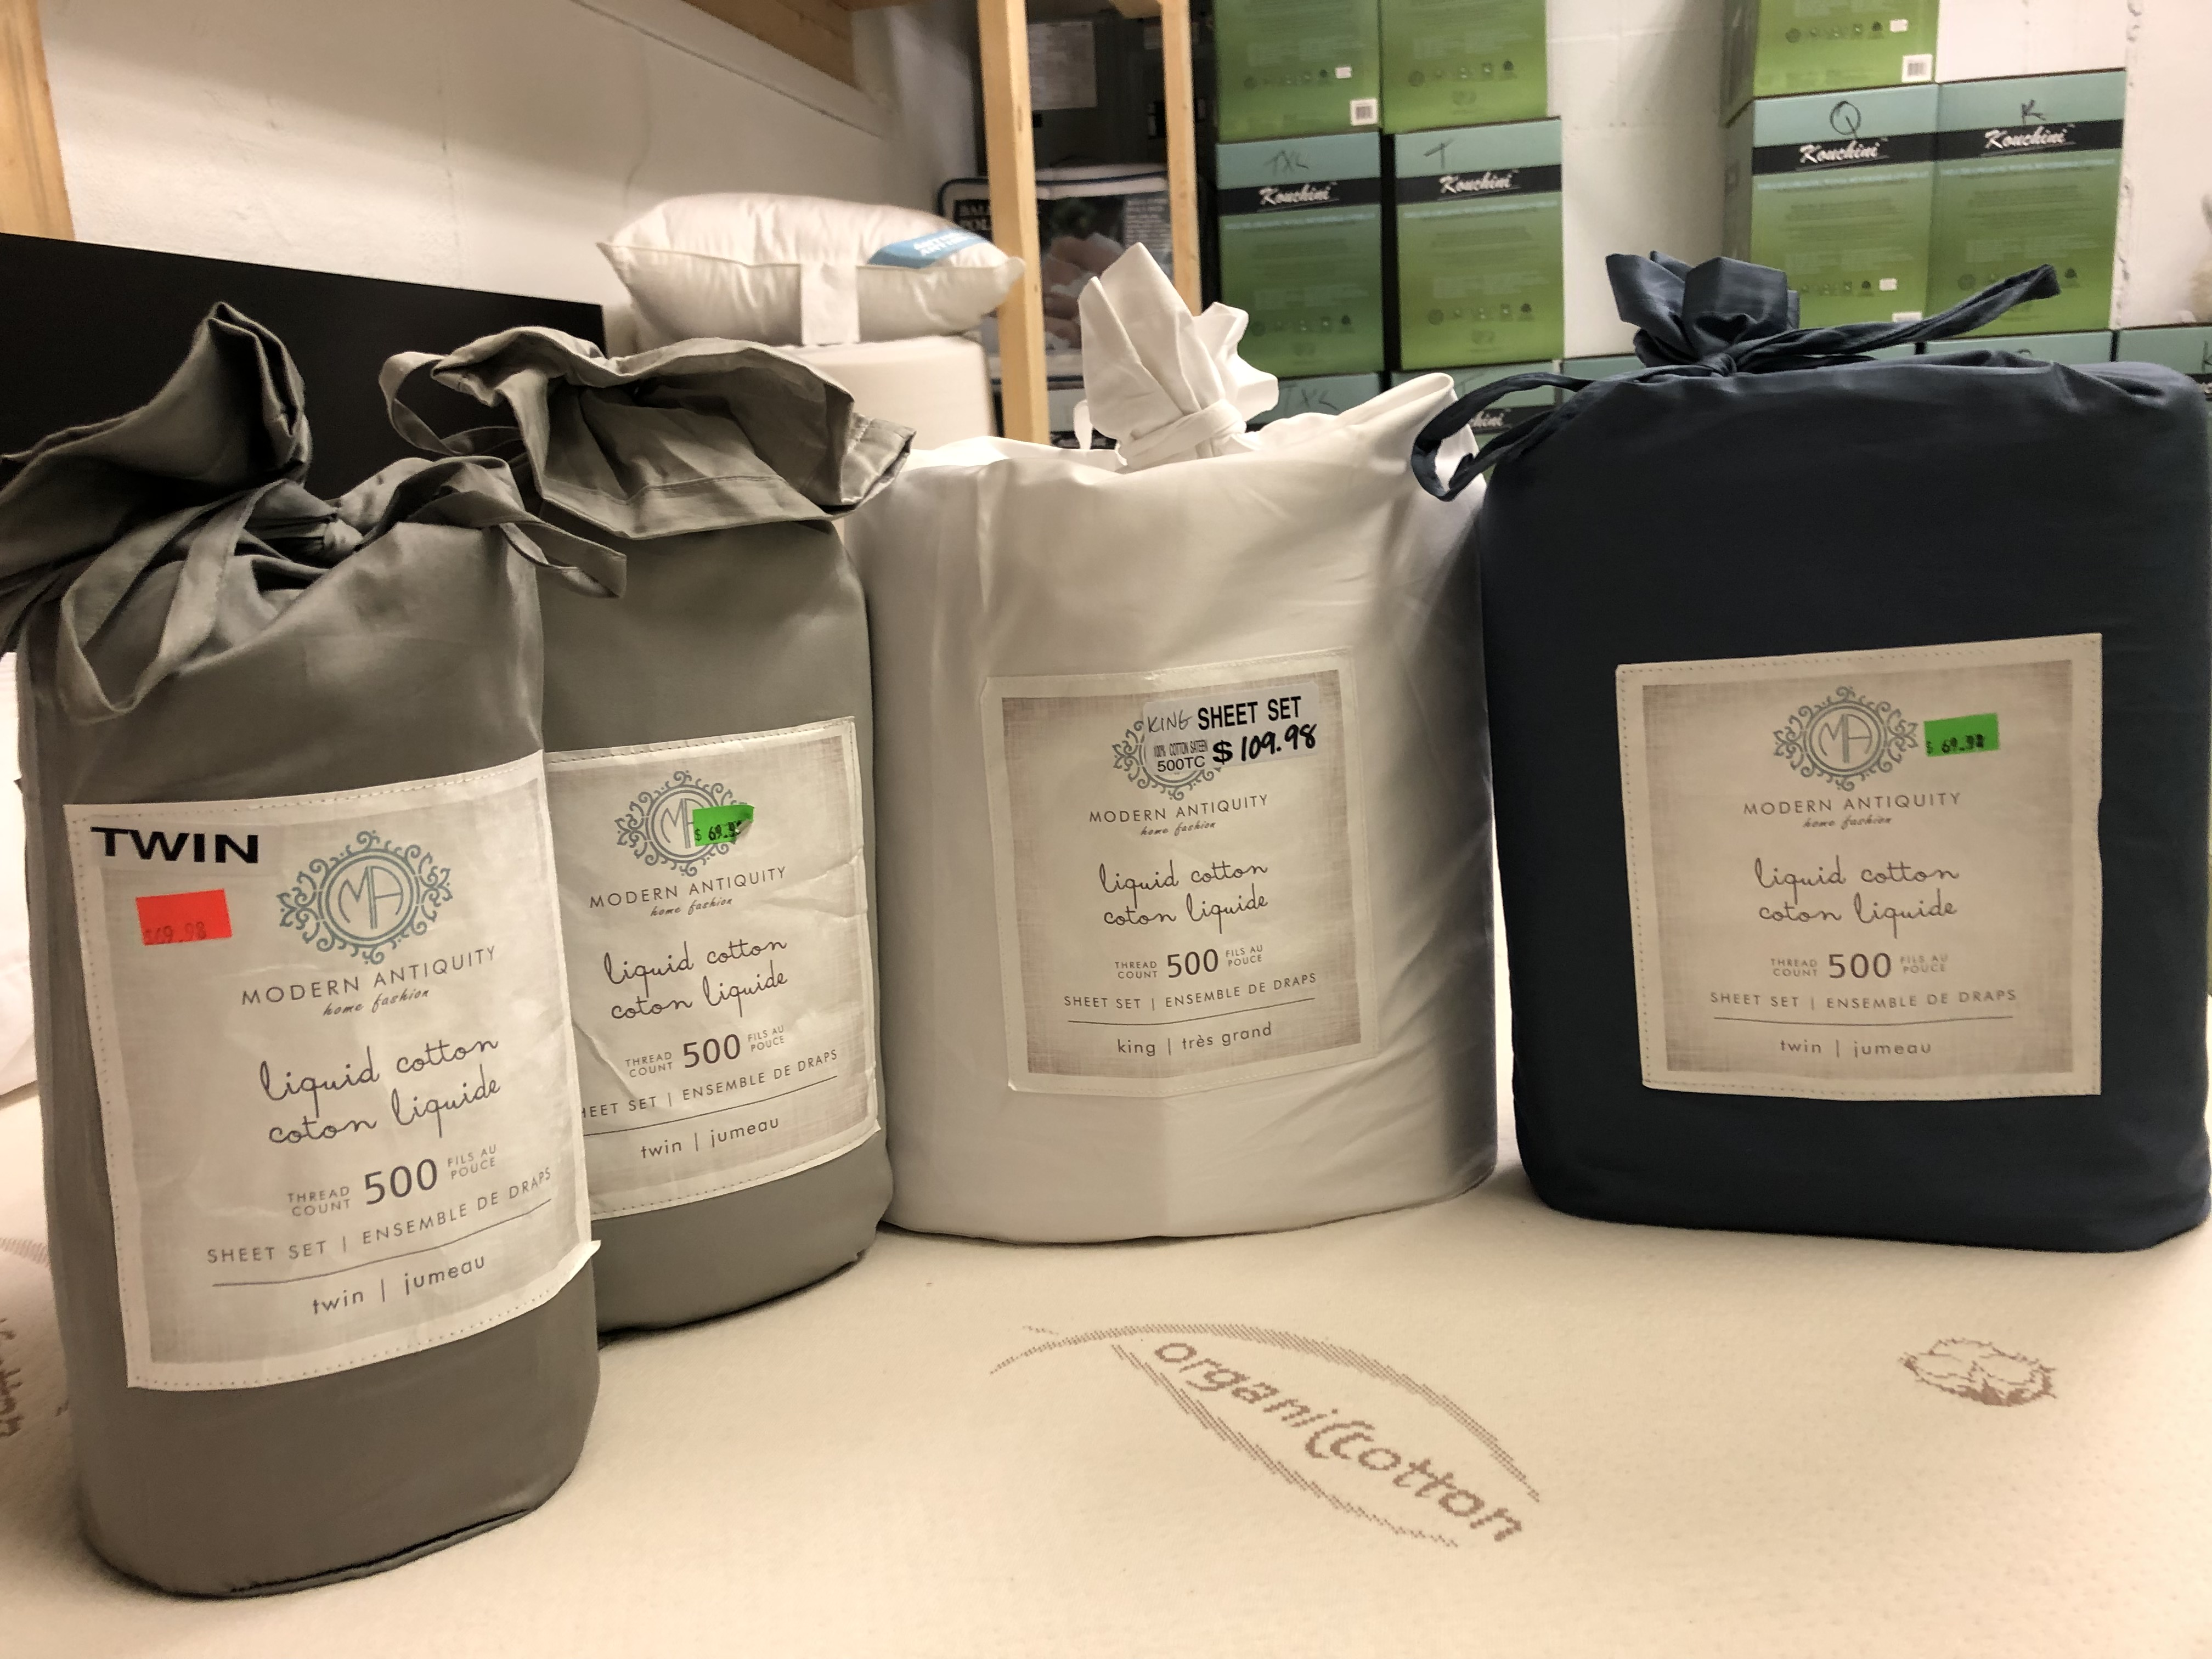 Liquid Cotton Sheets by Modern Antiquity (back in stock)